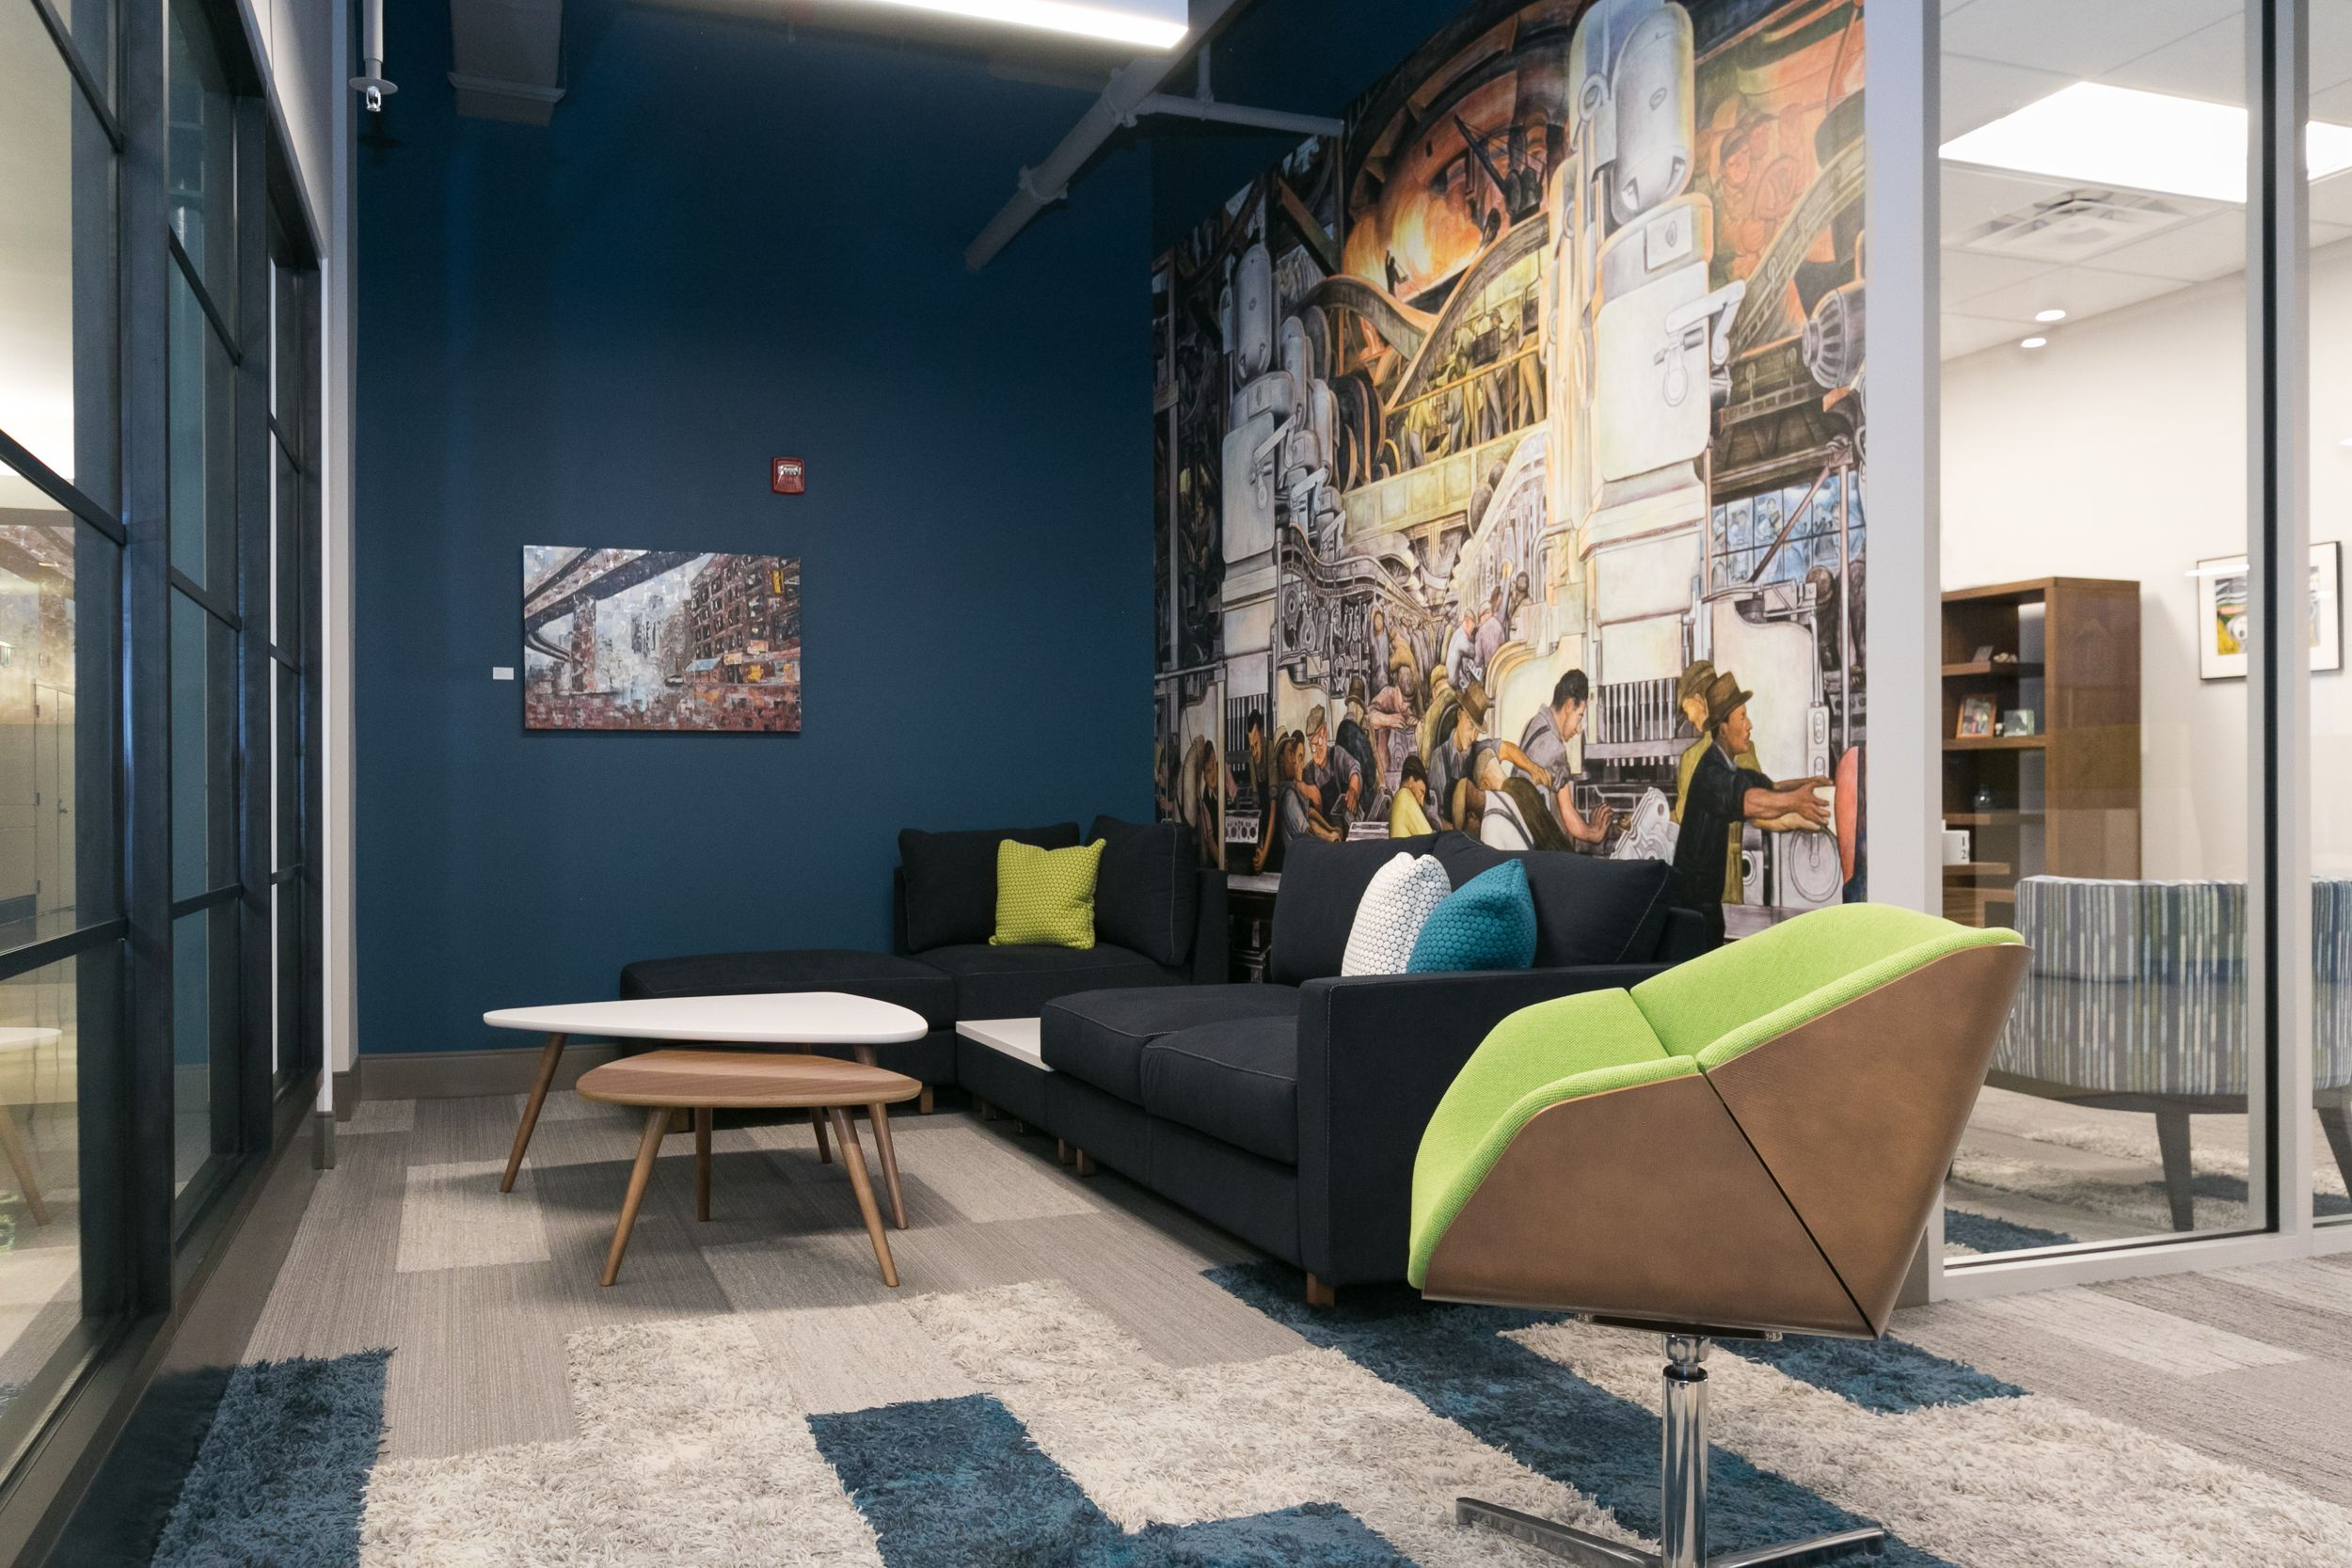 Blue, green, and gray lounge space amongst a Detroit mural at Burris Law firm.